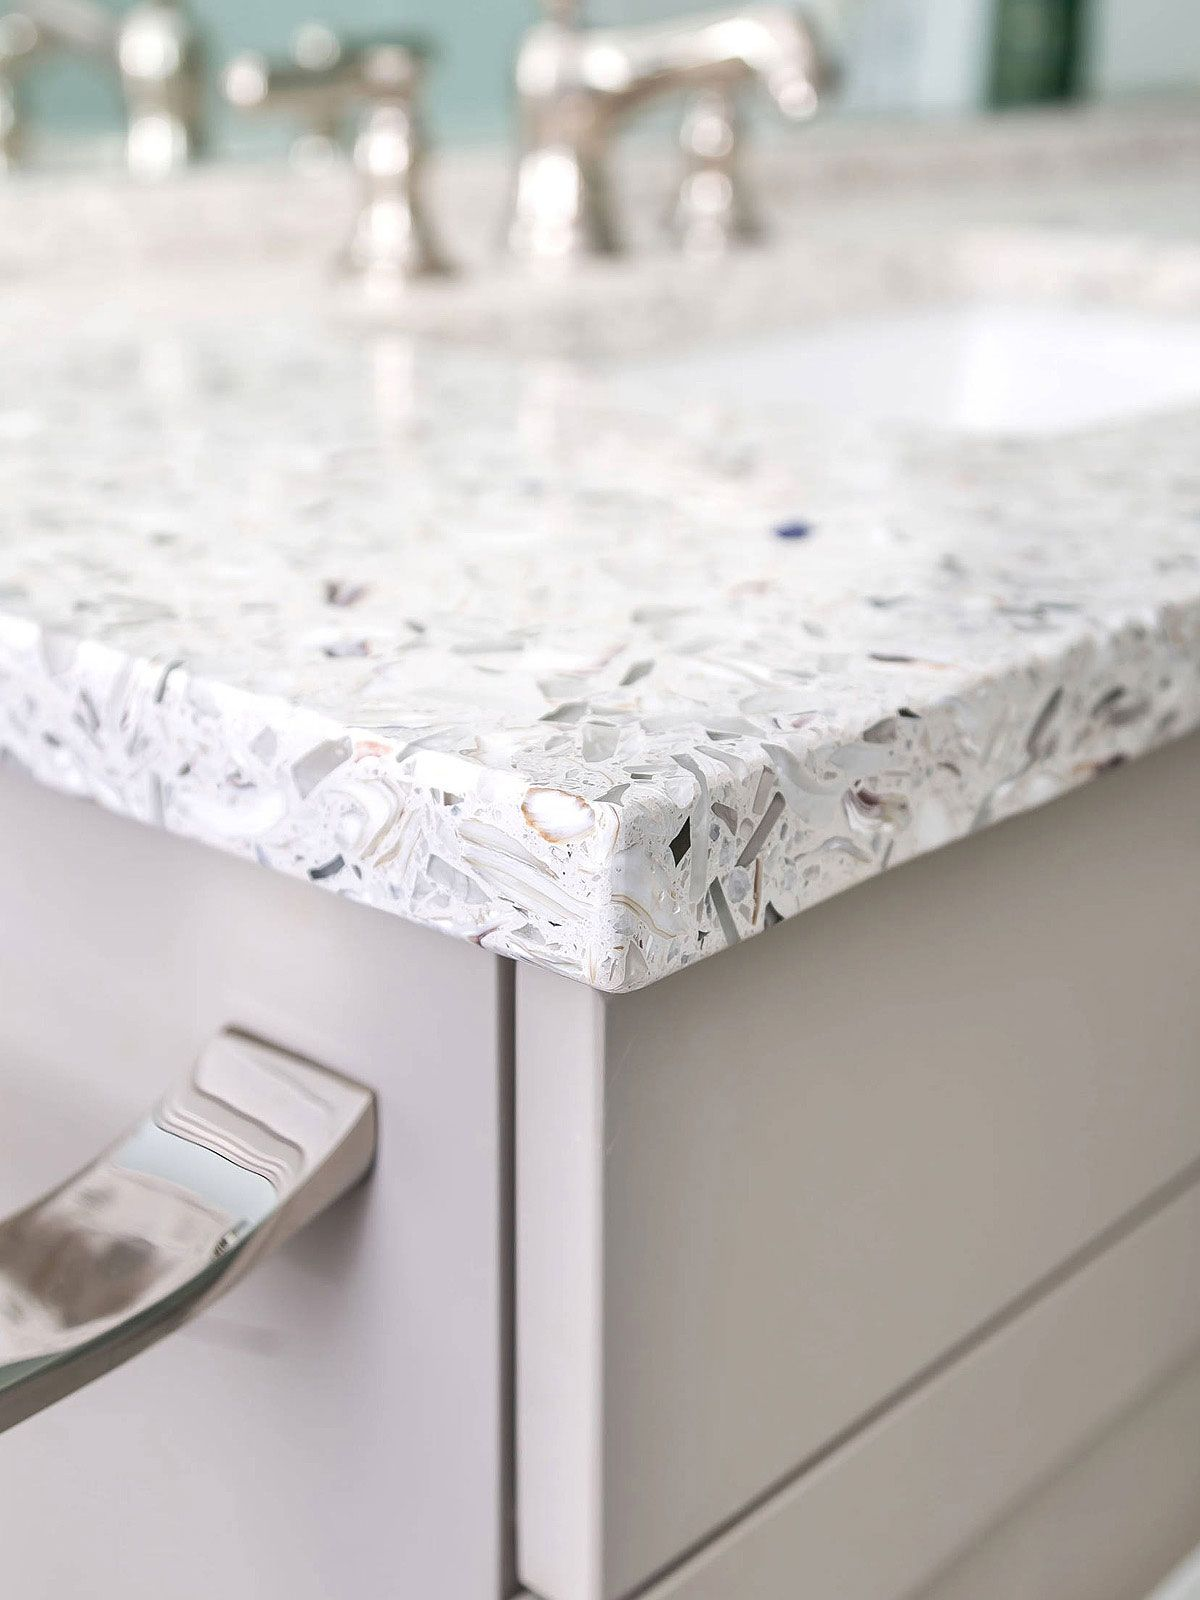 37 Recycled Glass Countertop Ideas Designs Tips Advice Glass Countertops Recycled Glass Countertops Countertops